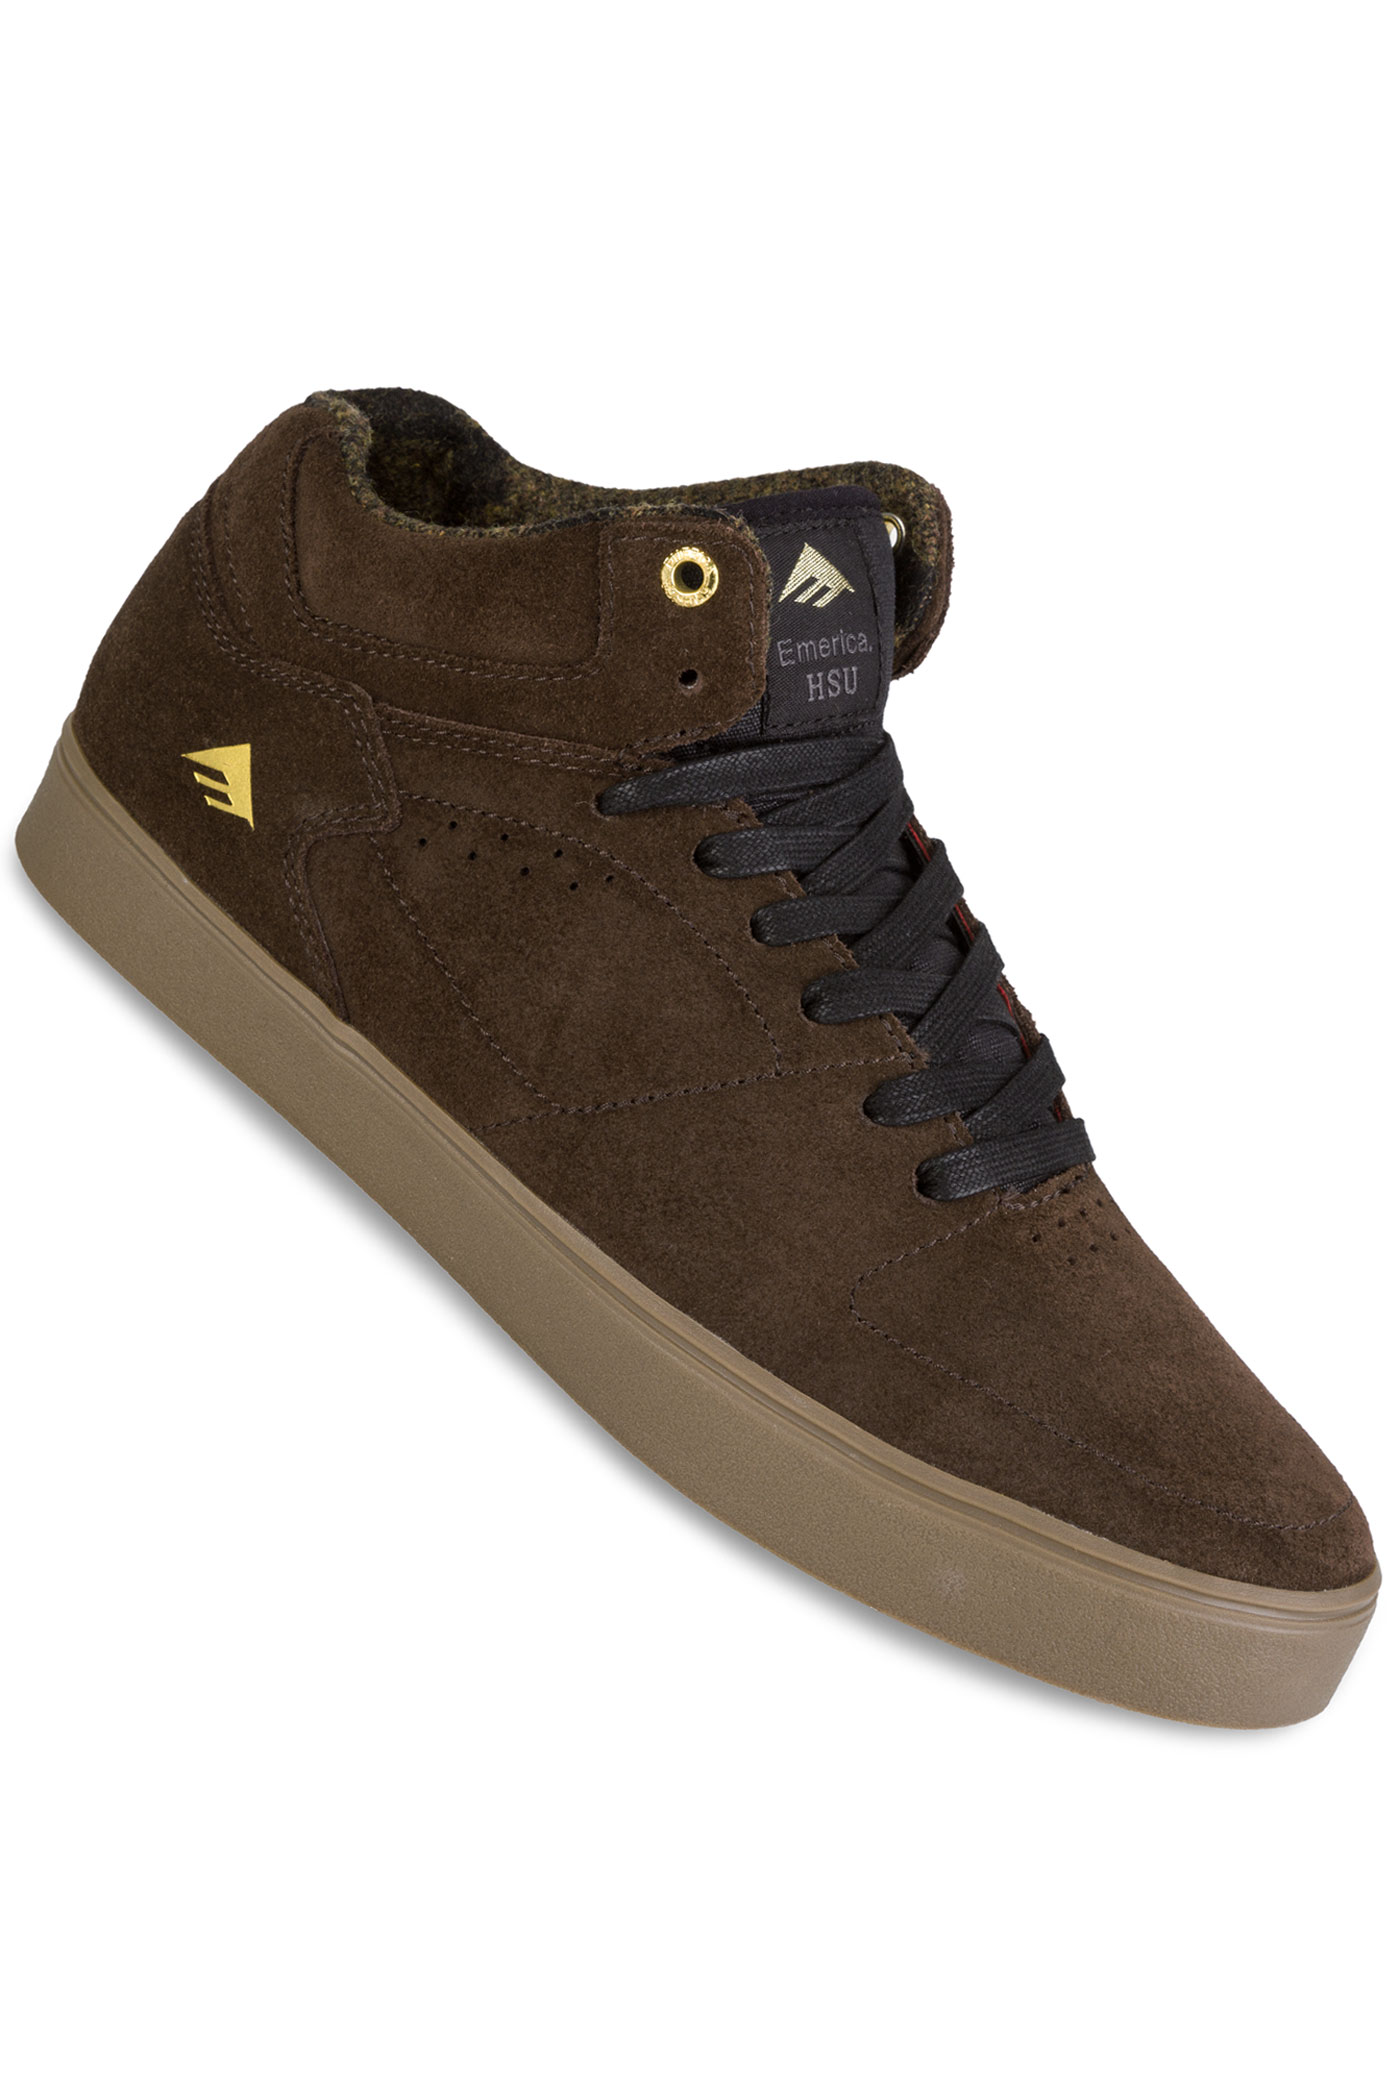 Emerica Chaussuredark Brown Hsu The G6 QCeWrdxoBE